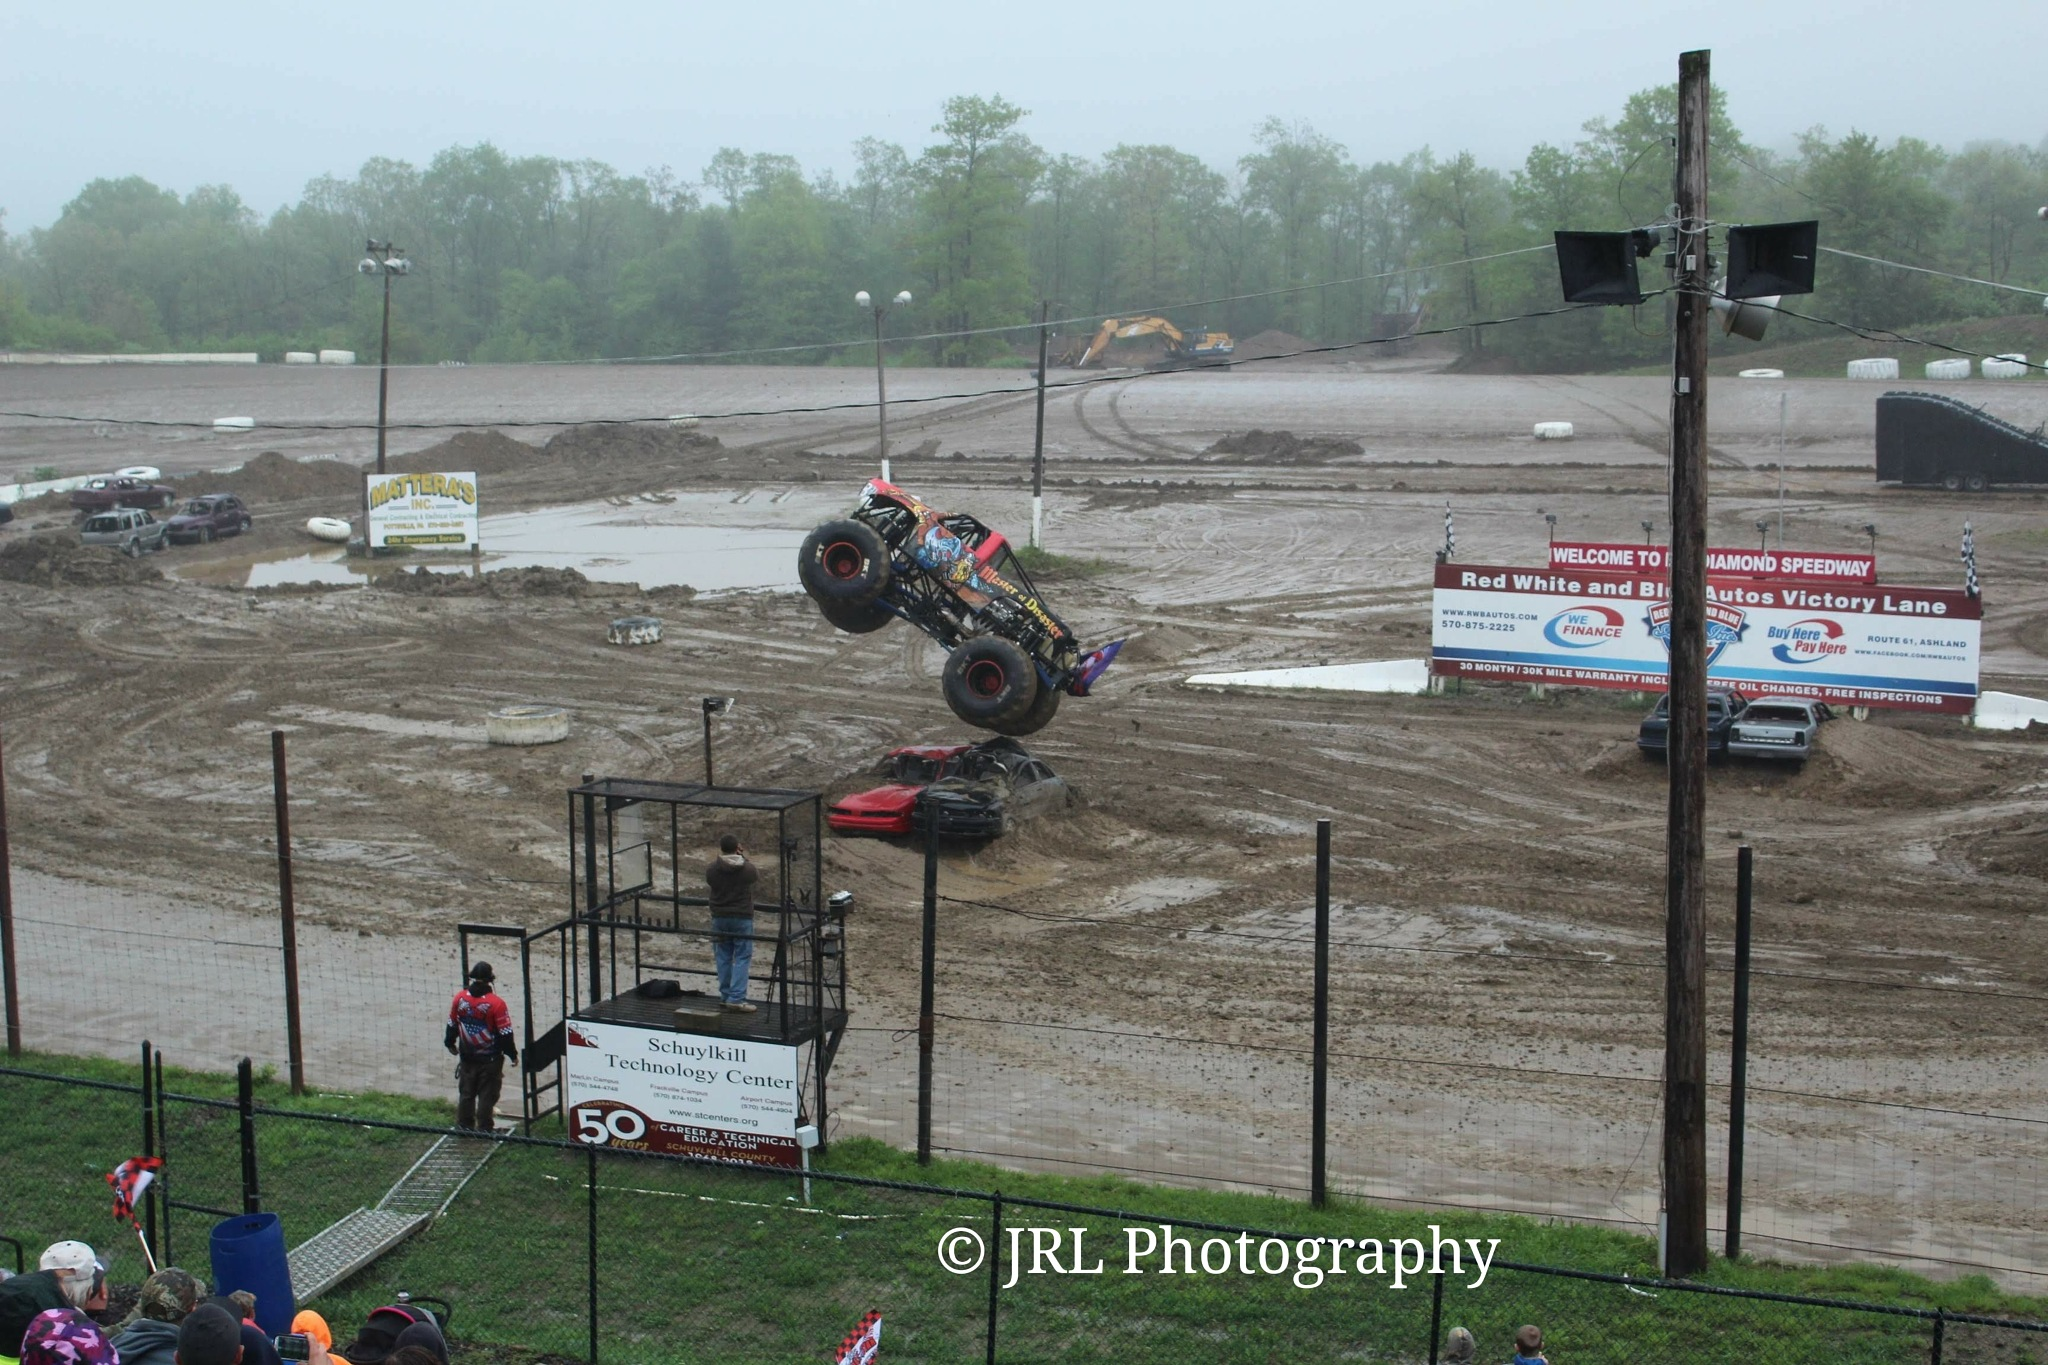 Got Muddy Air with Master of Disaster by Jason Lowe